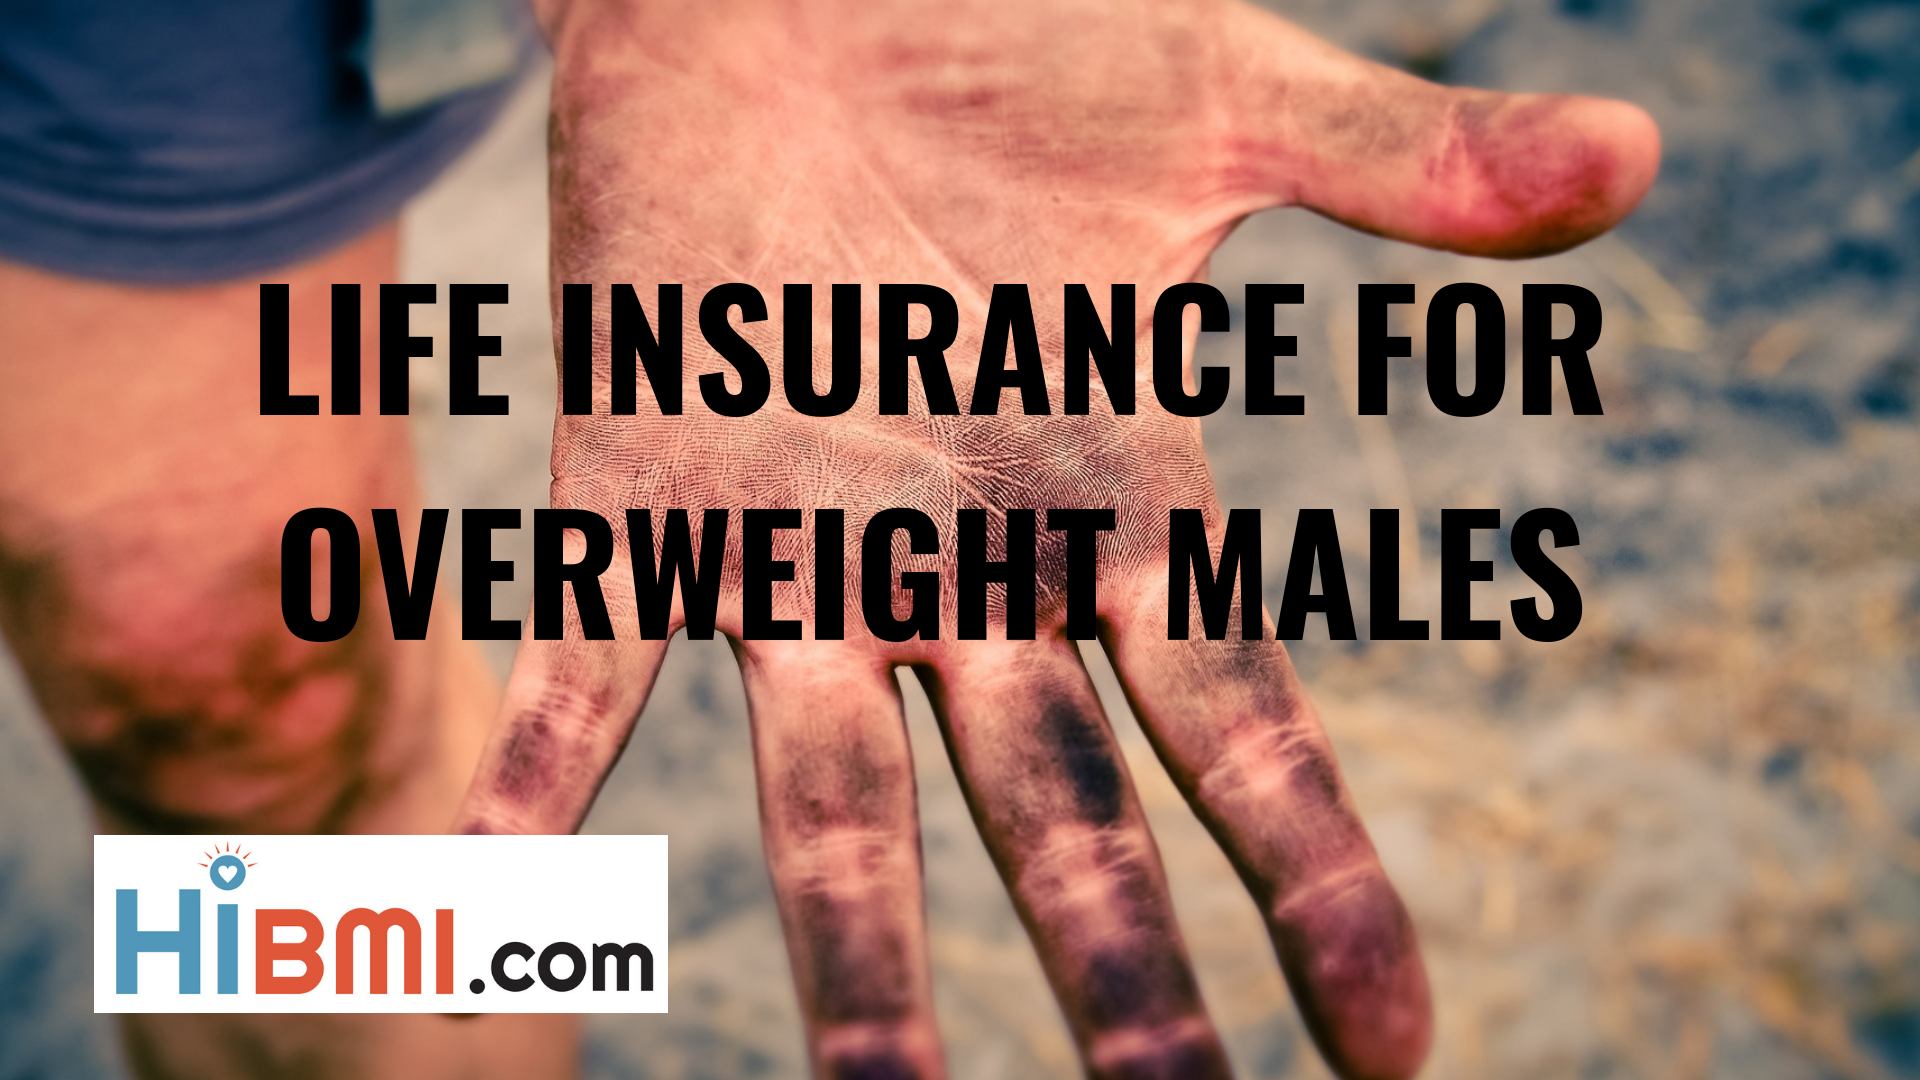 life insurance for overweight males, life insurance approvability, term life insurance, whole life insurance